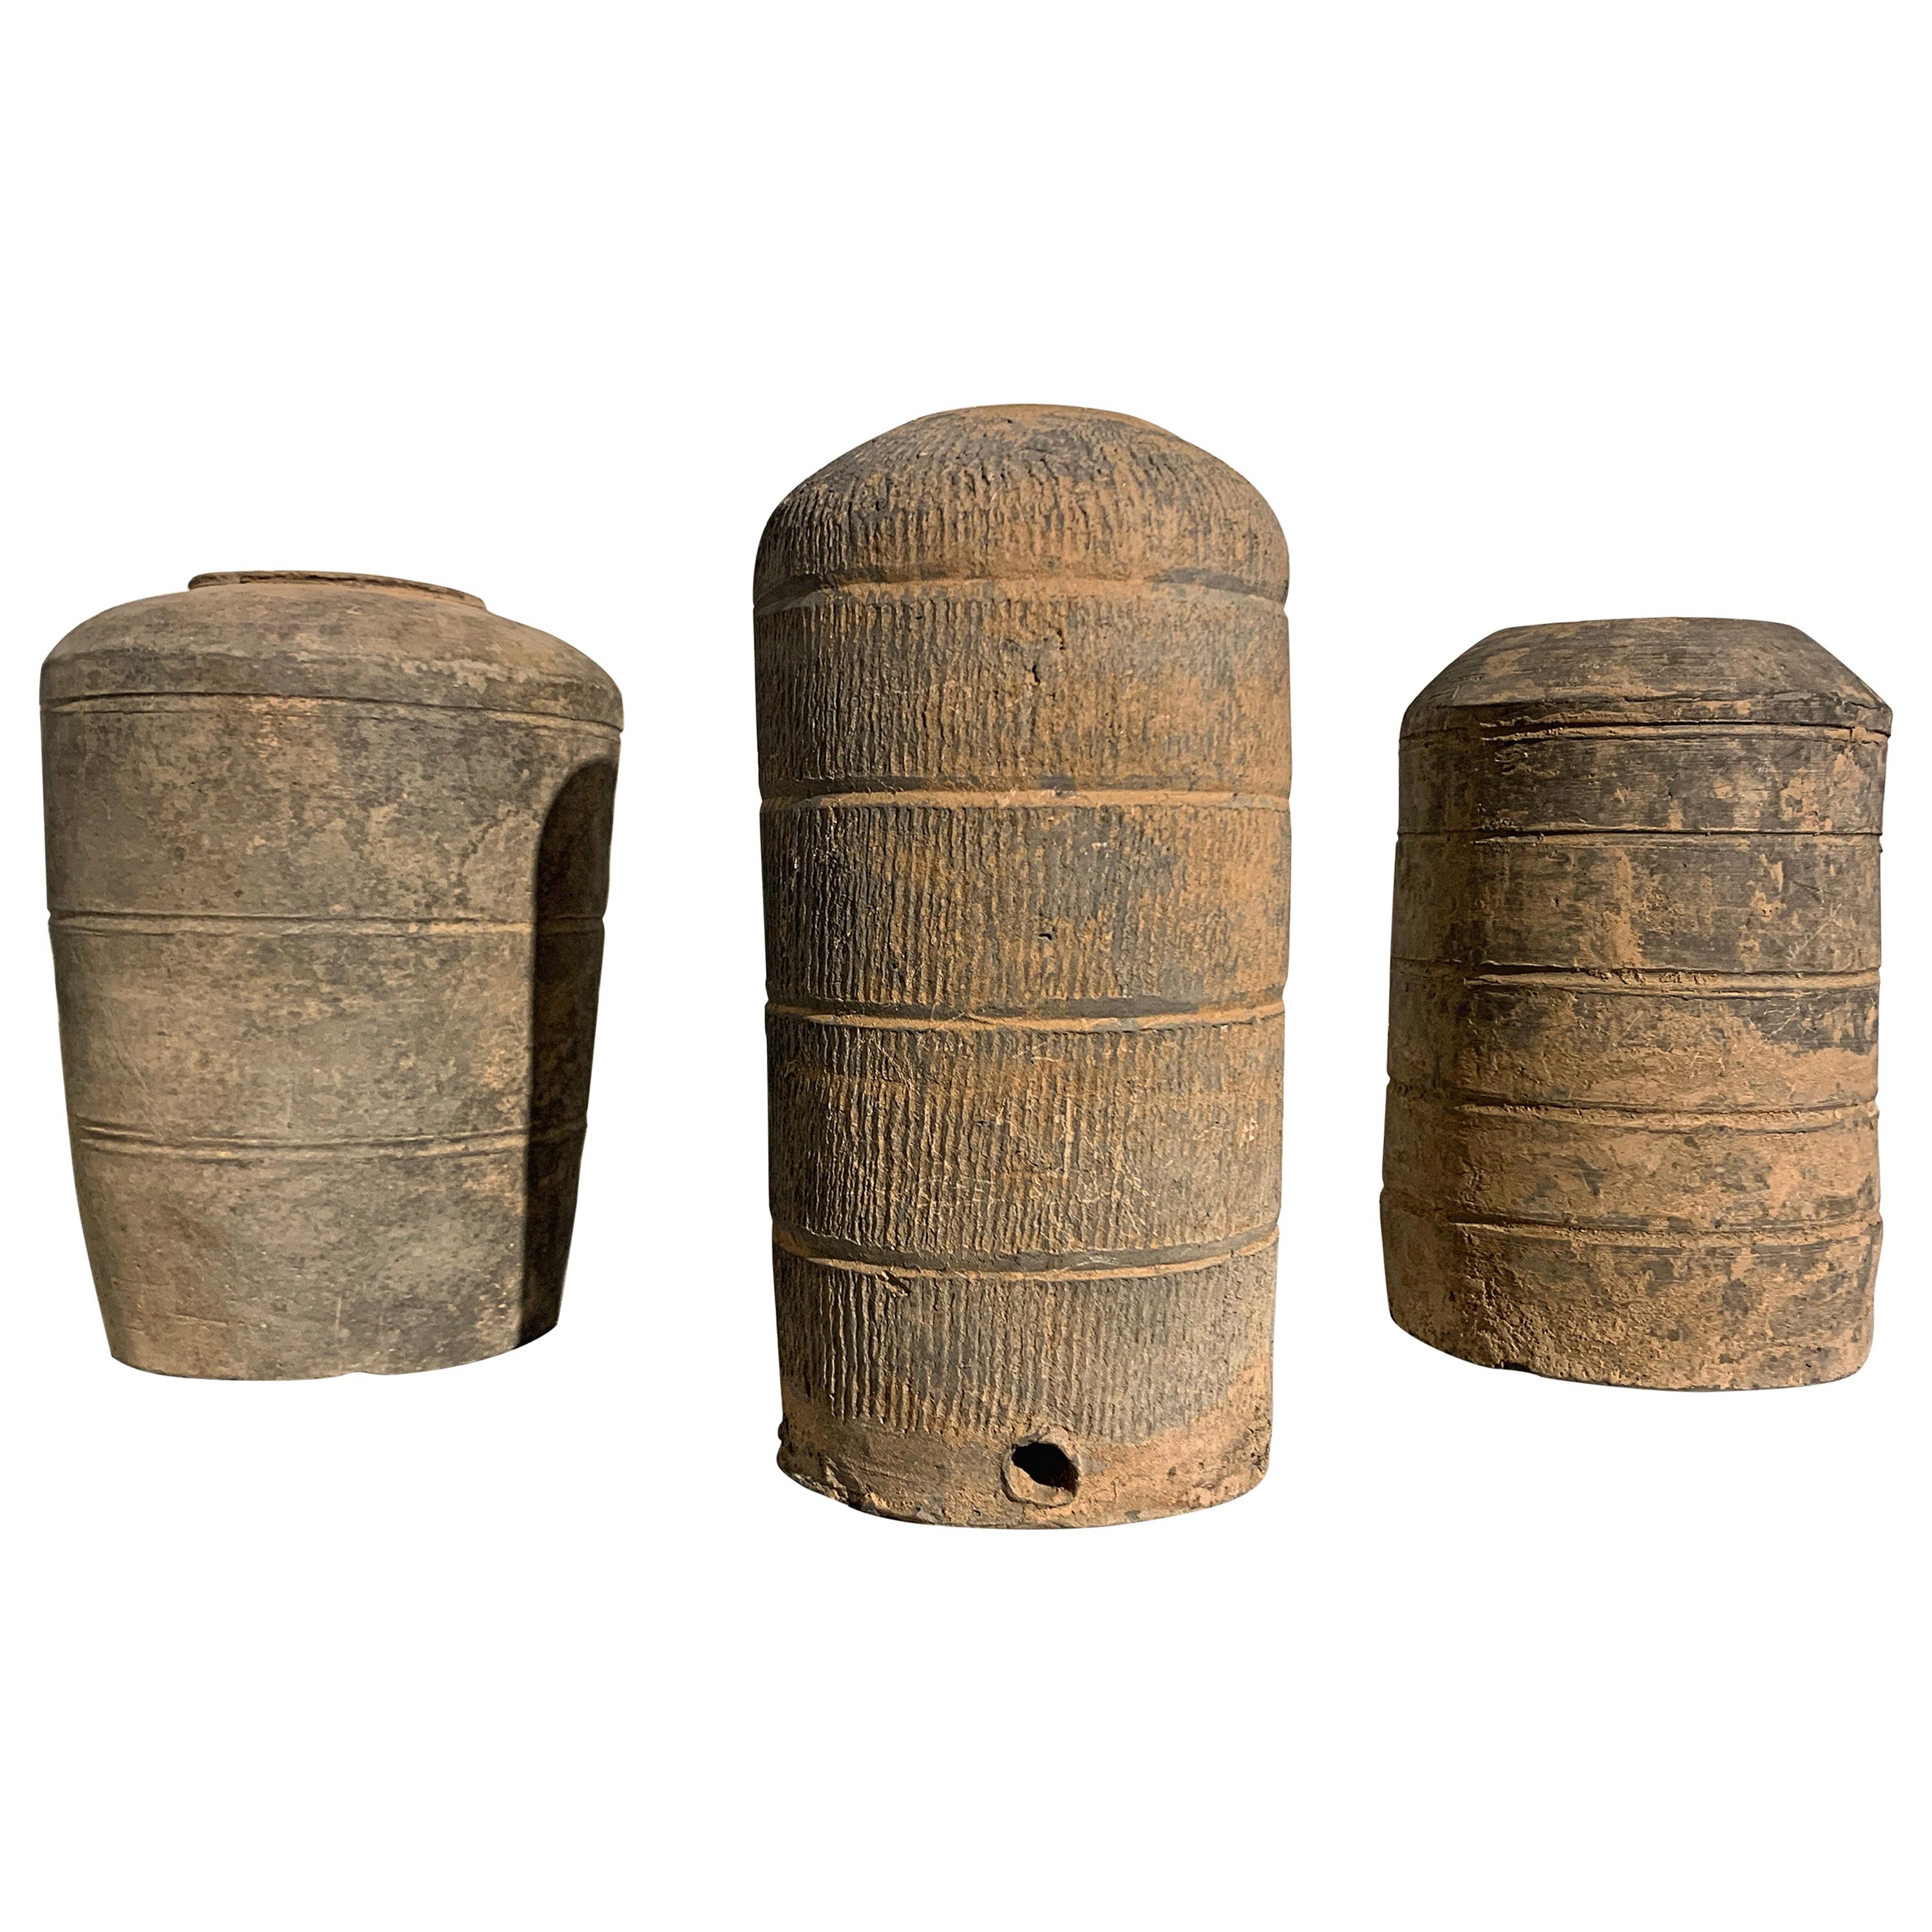 Group of Three Chinese Han Dynasty Style Gray Pottery Granary Models